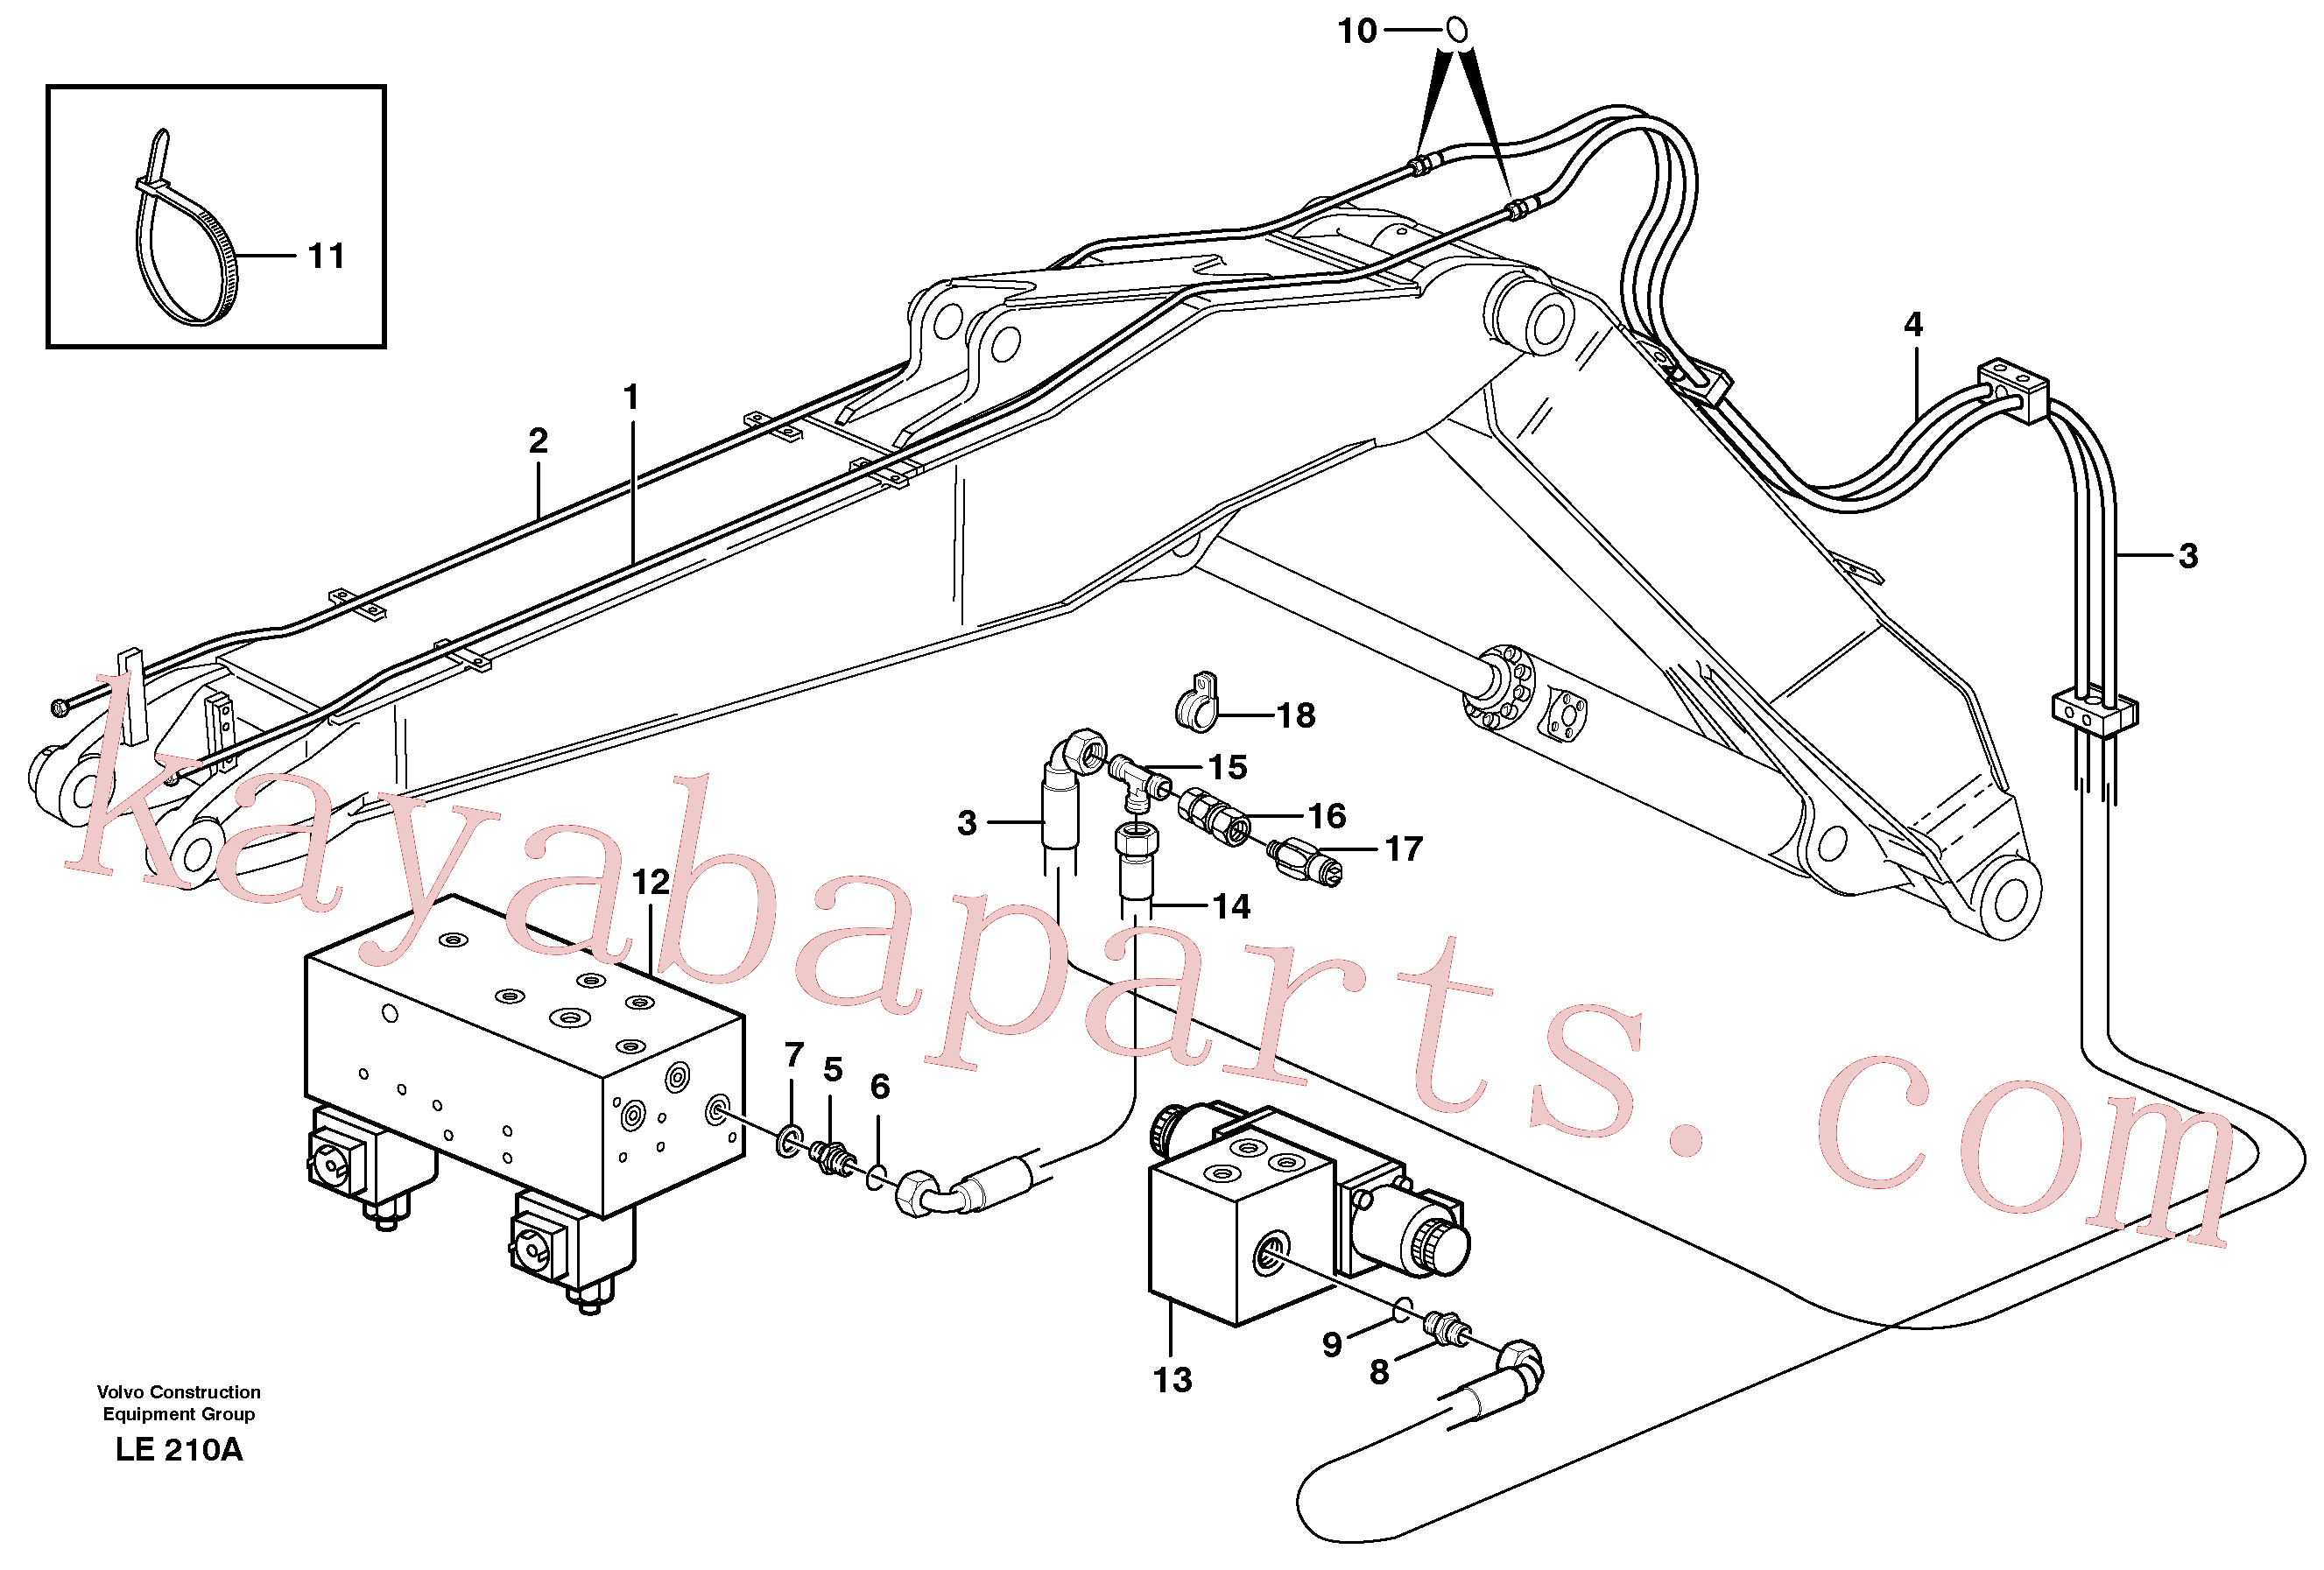 VOE14378711 for Volvo Hydr. quick fit equipm. on adjustable boom(LE210A assembly)